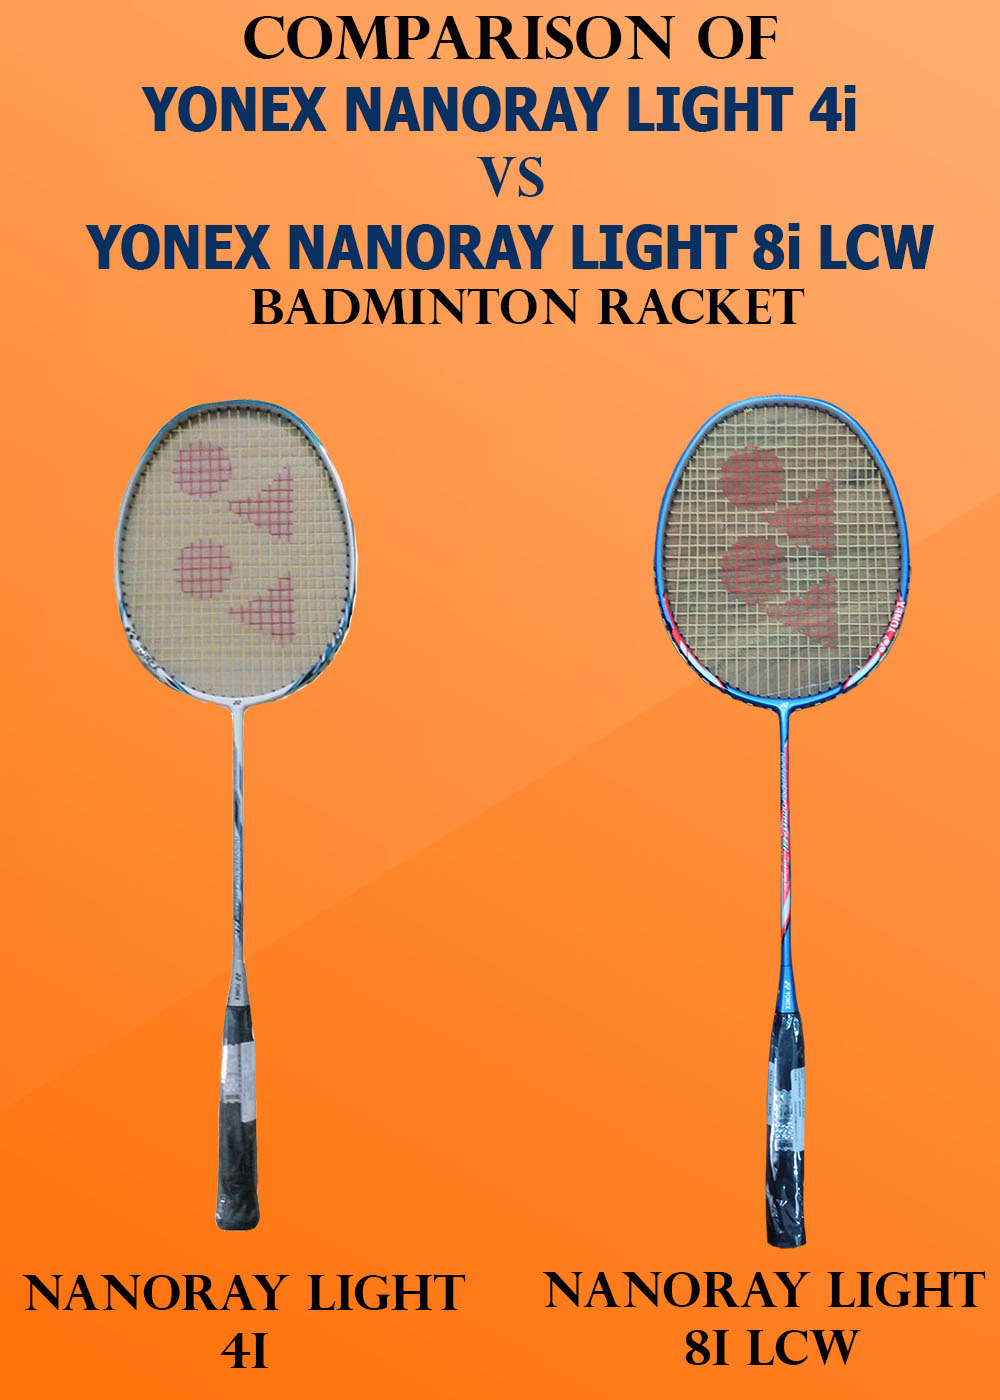 Comparison of Yonex Nanoray Light 4i VS Nanoray Light 8i_1